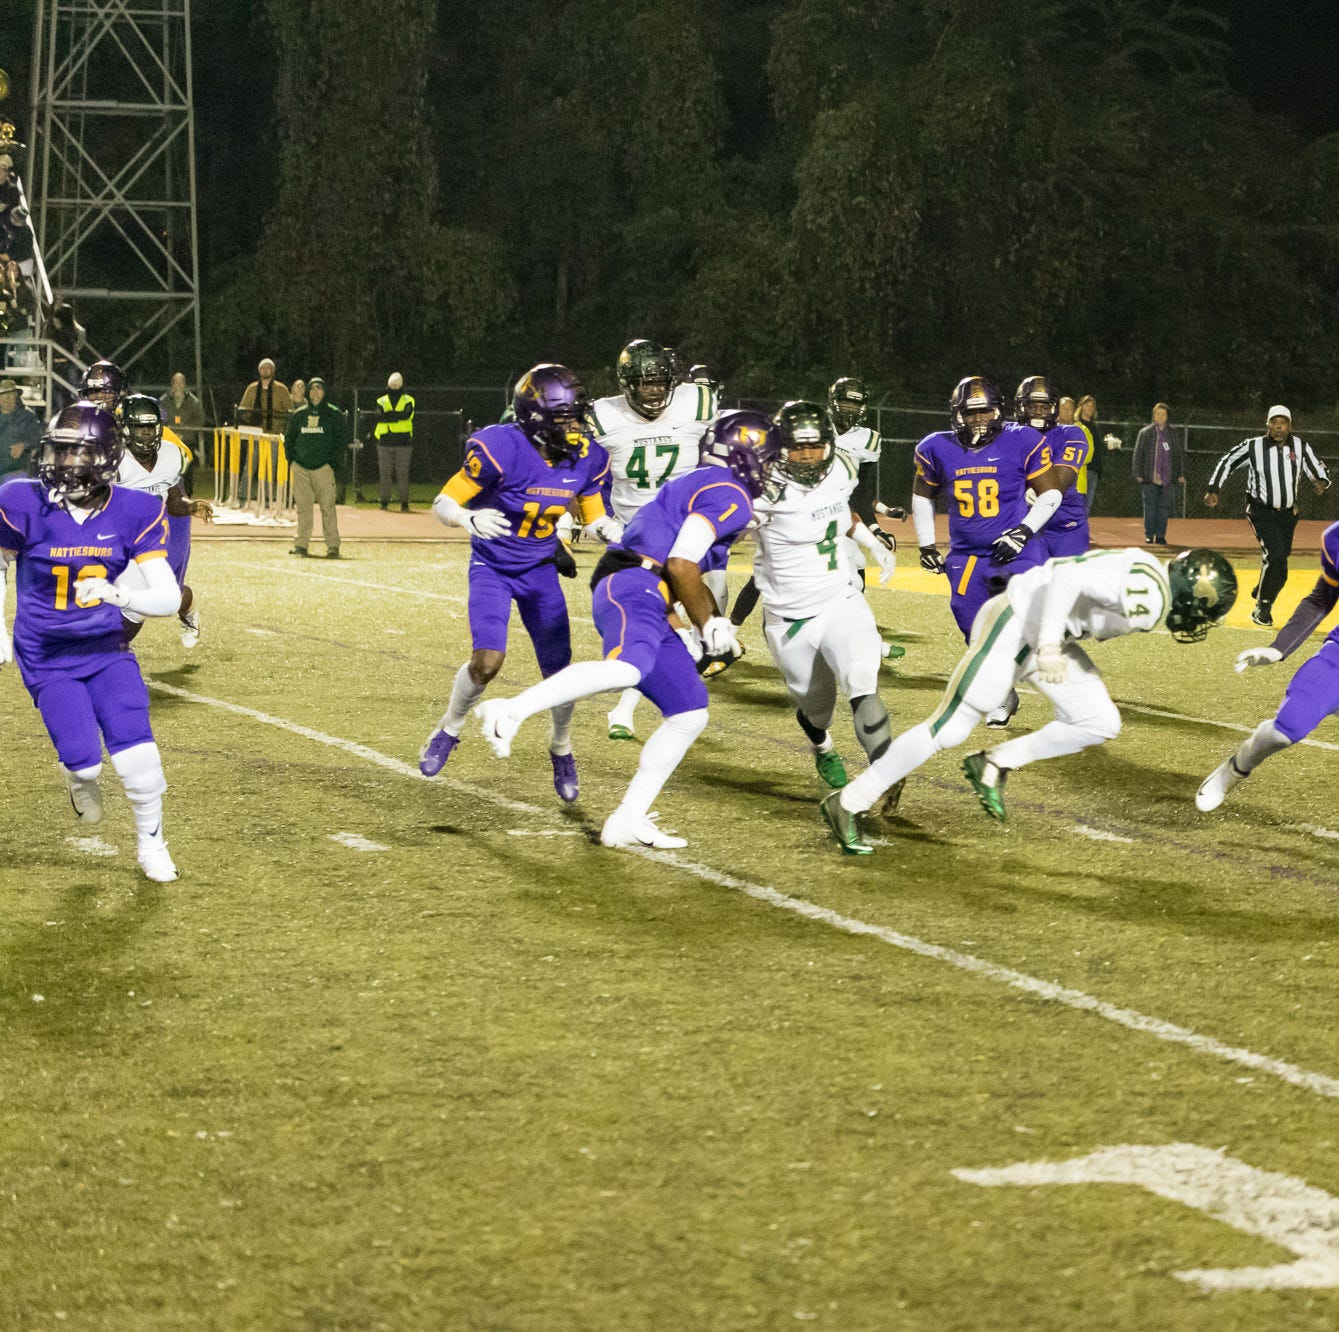 West Jones upsets No. 1 Hattiesburg in South State semifinal 37-14